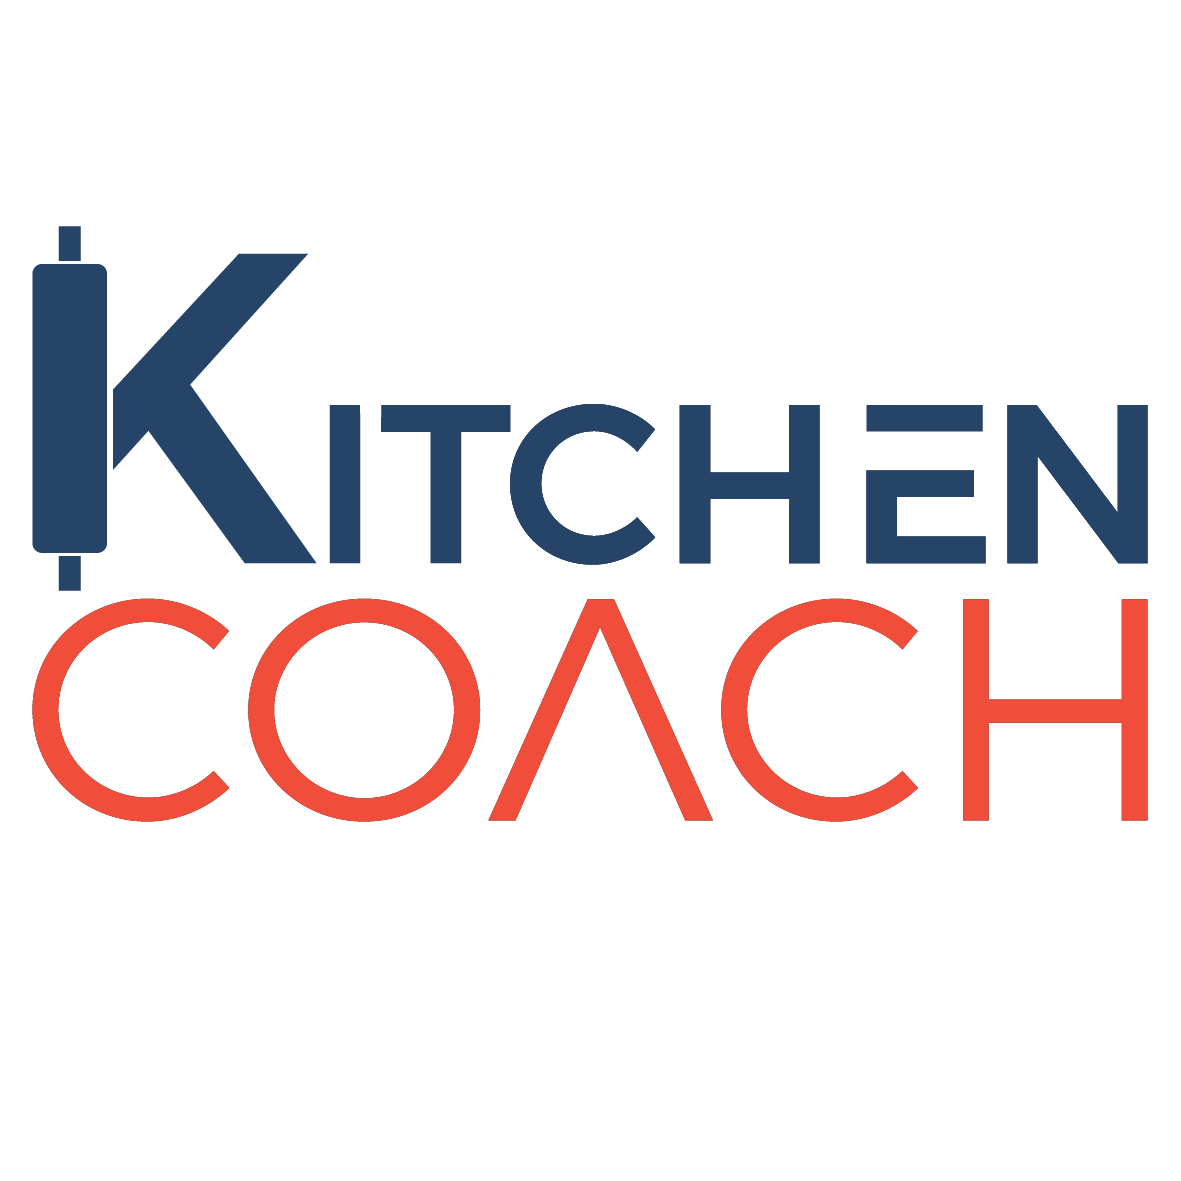 The Kitchen Coach